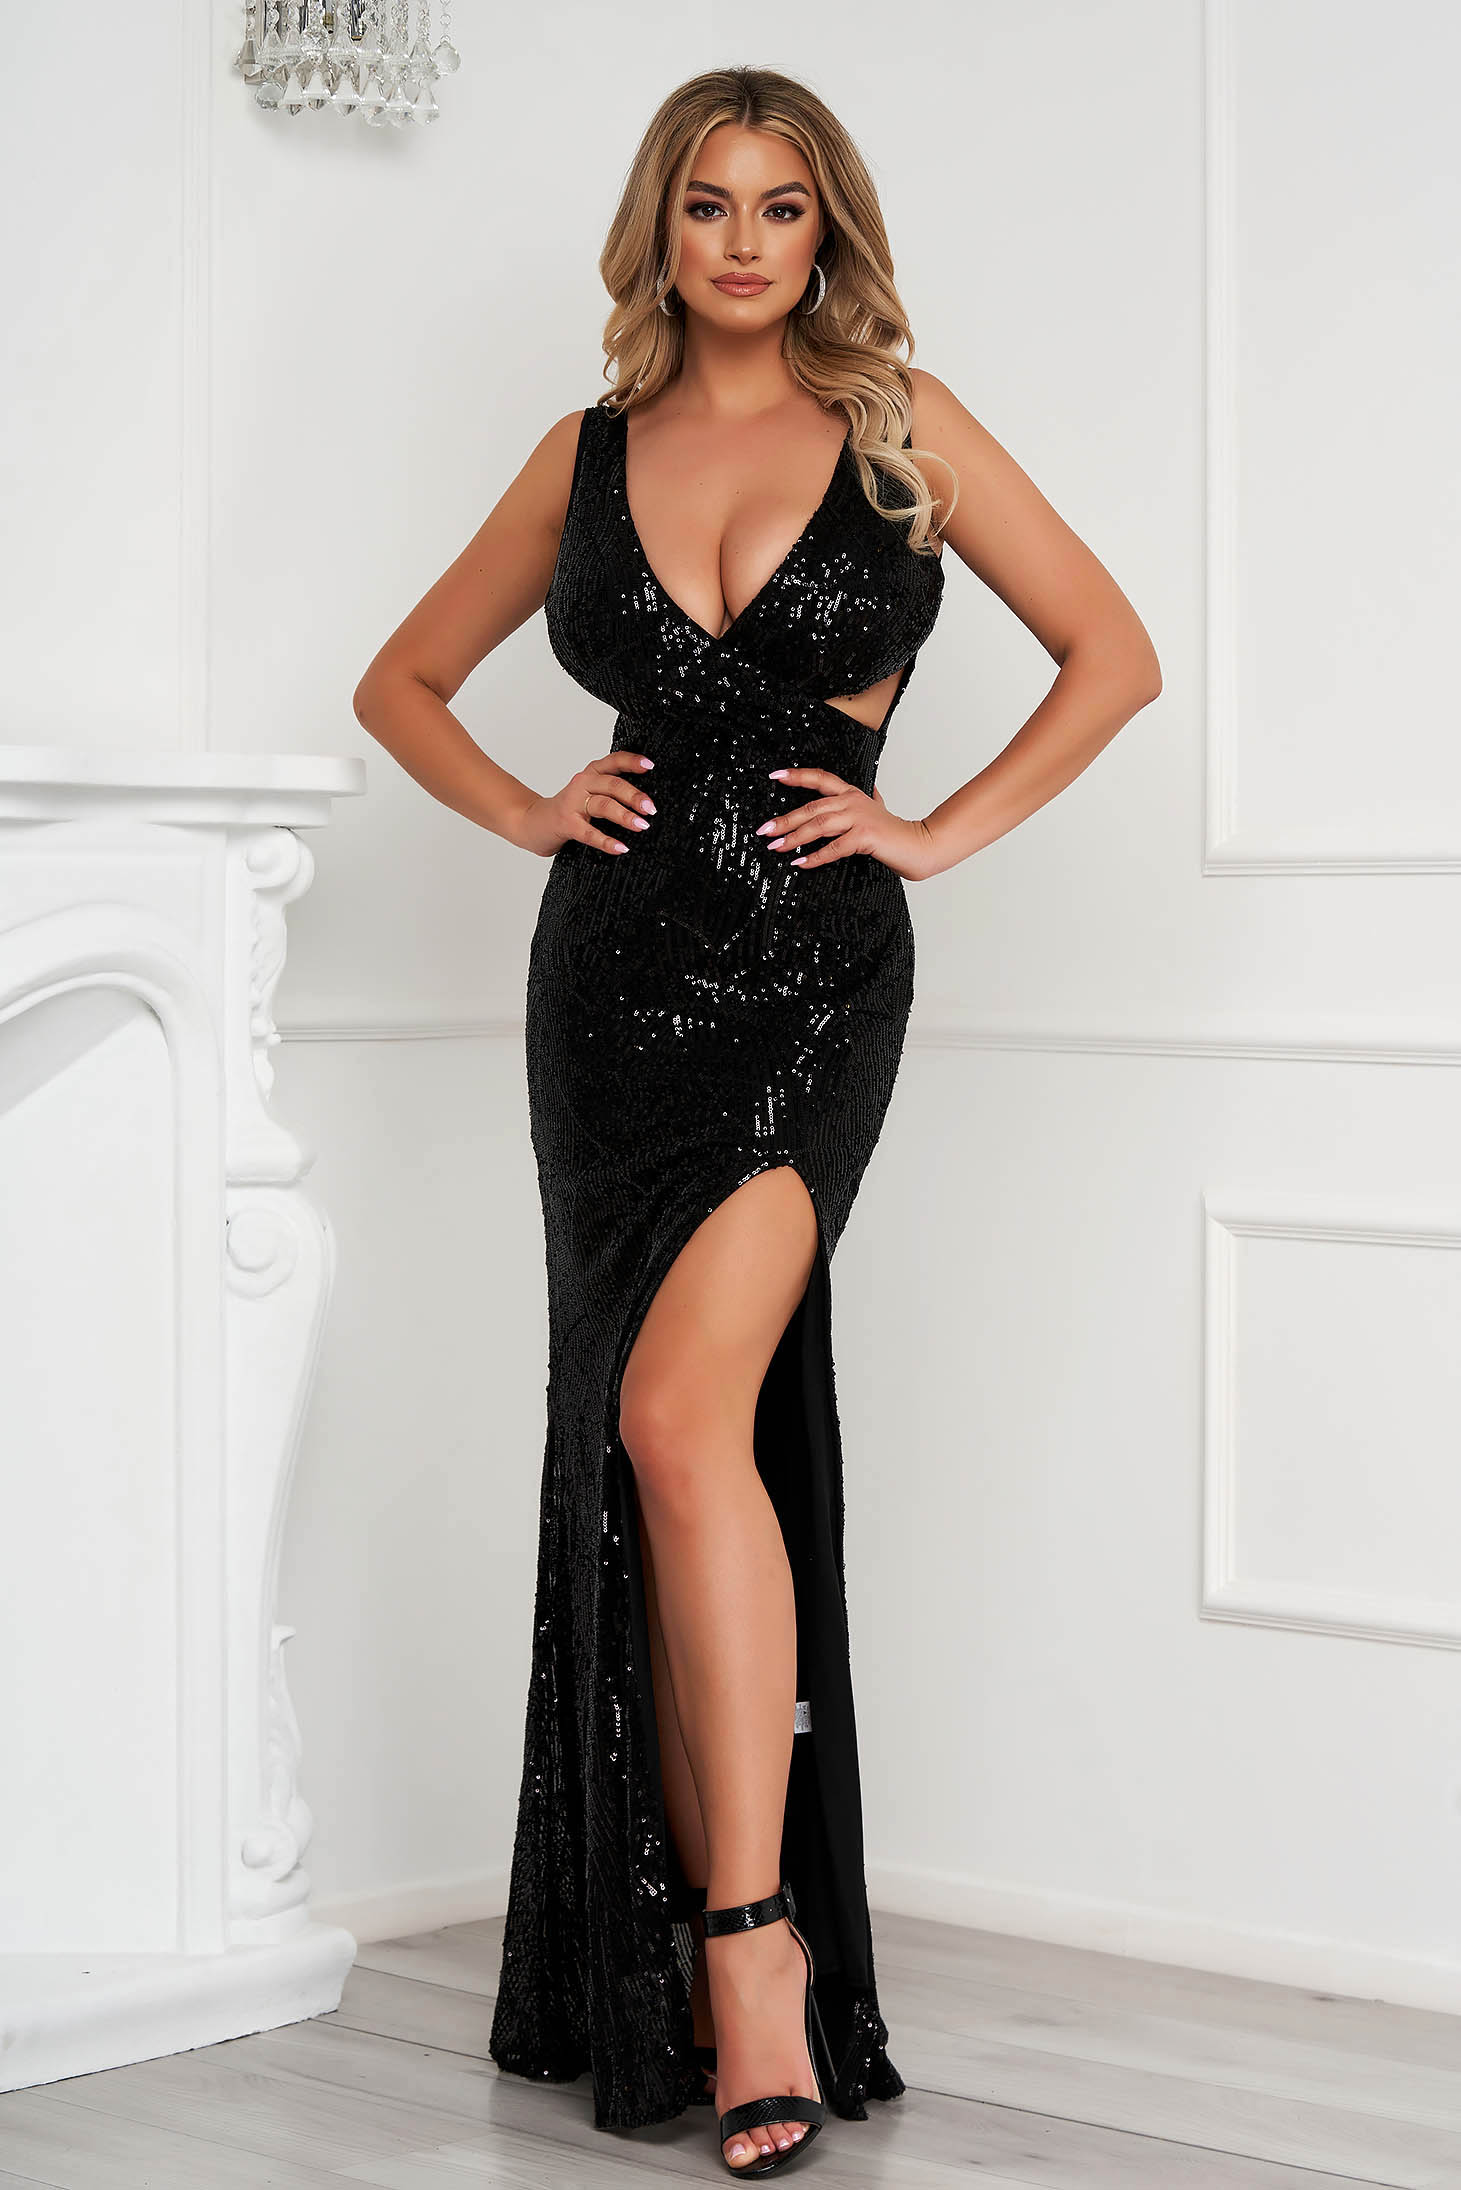 Black dress long occasional pencil with sequins with cut out material